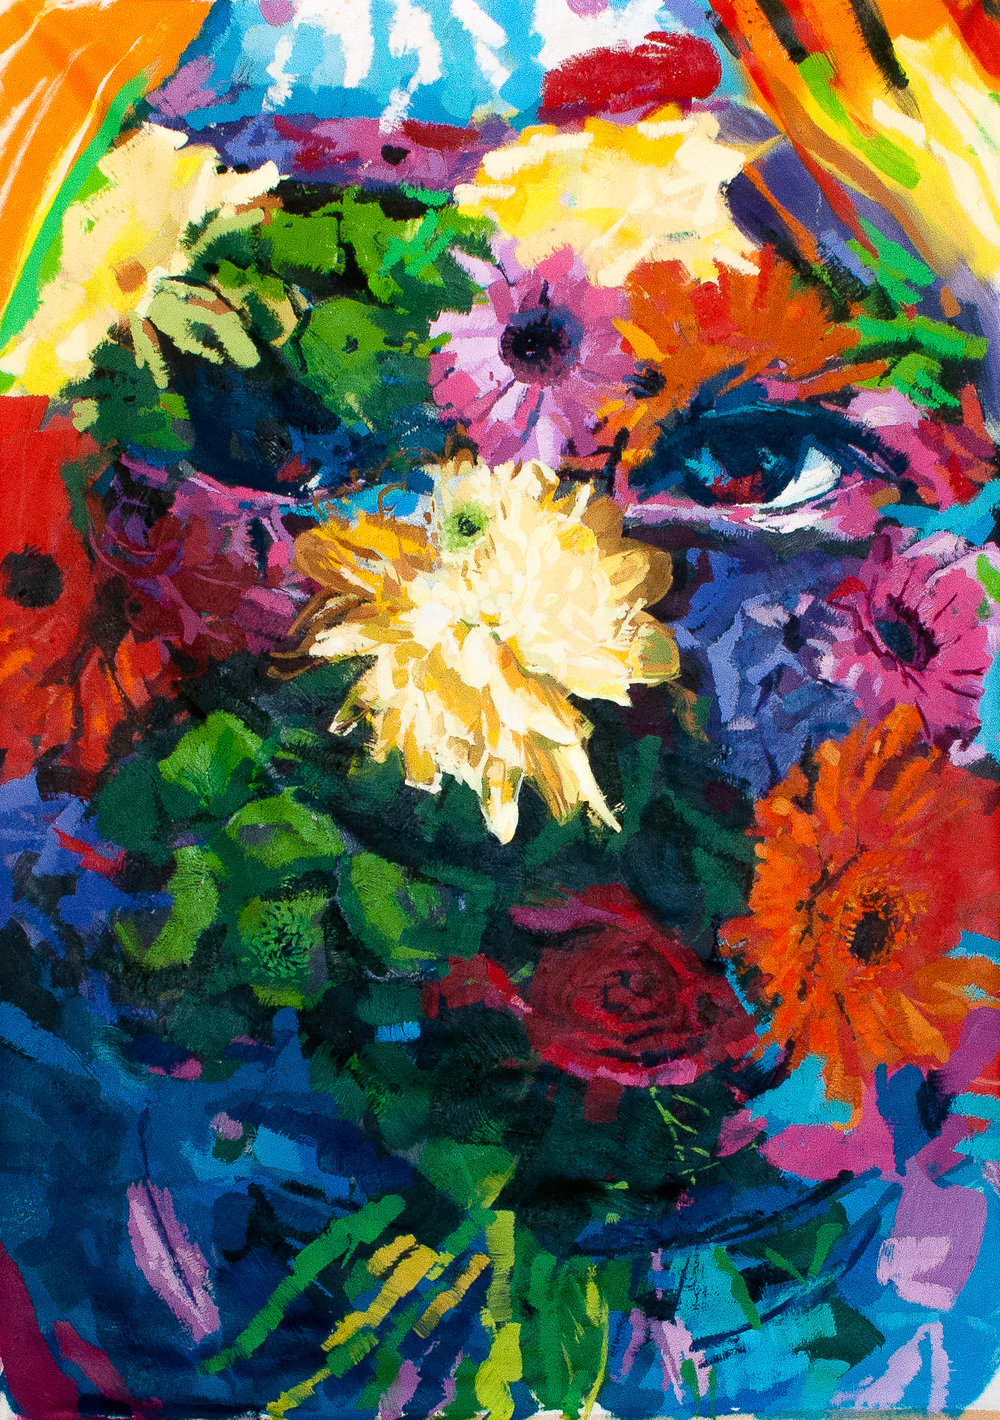 Flowerface, 3ft x 4ft oil on canvas 2018